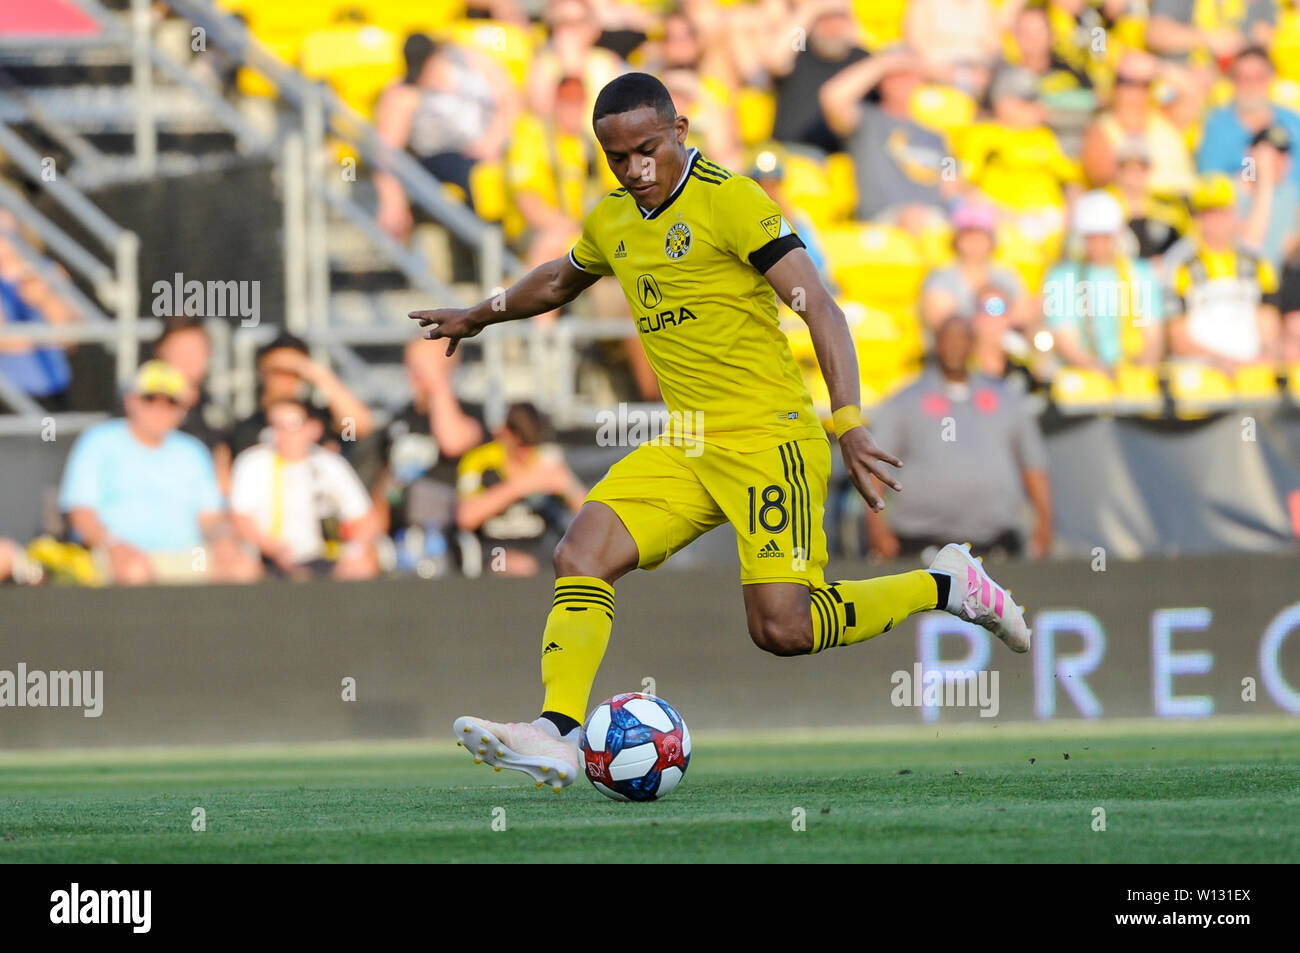 Saturday, June 29, 2019: Columbus Crew SC forward Robinho (18) in the first half of the match between Orlando City and Columbus Crew SC at MAPFRE Stadium, in Columbus OH. Mandatory Photo Credit: Dorn Byg/Cal Sport Media. Orlando City 1 - Columbus Crew SC 0 after the first half - Stock Image